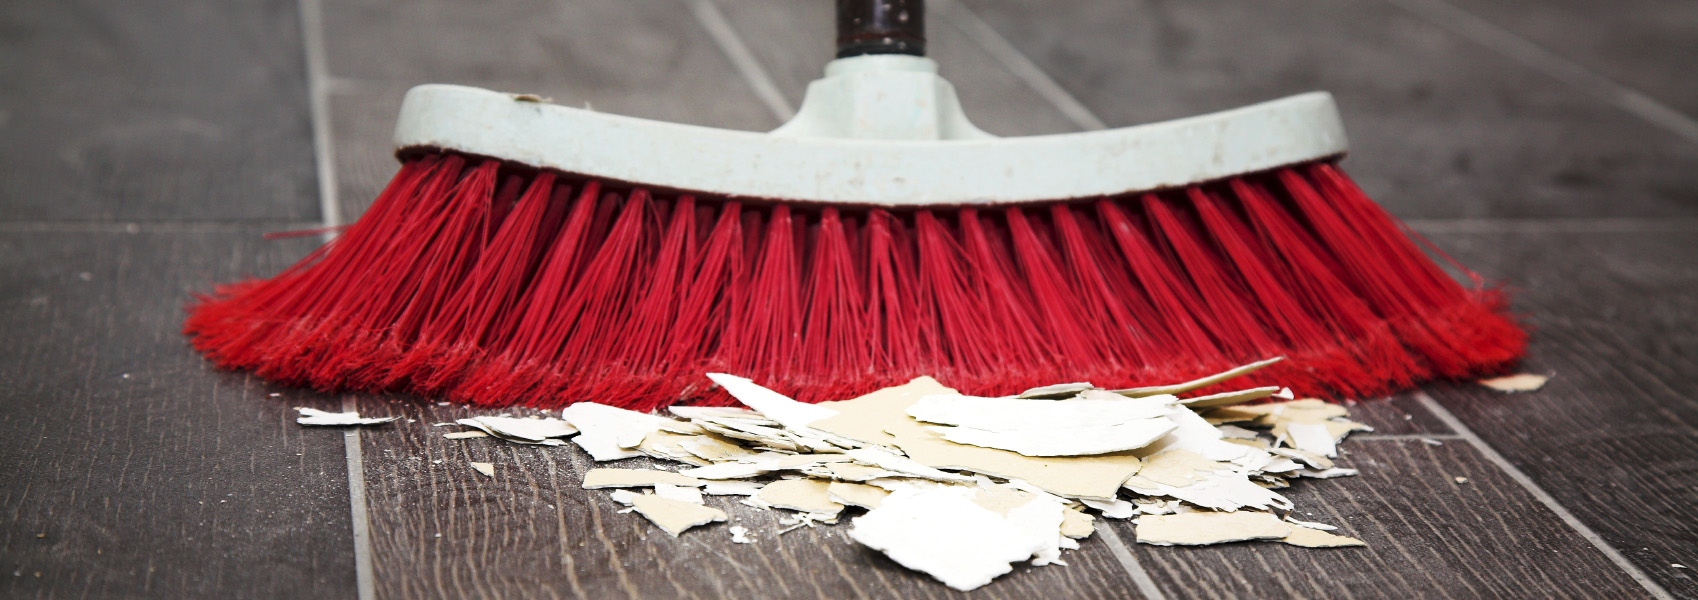 carpet cleaning with a vacuum cleaner